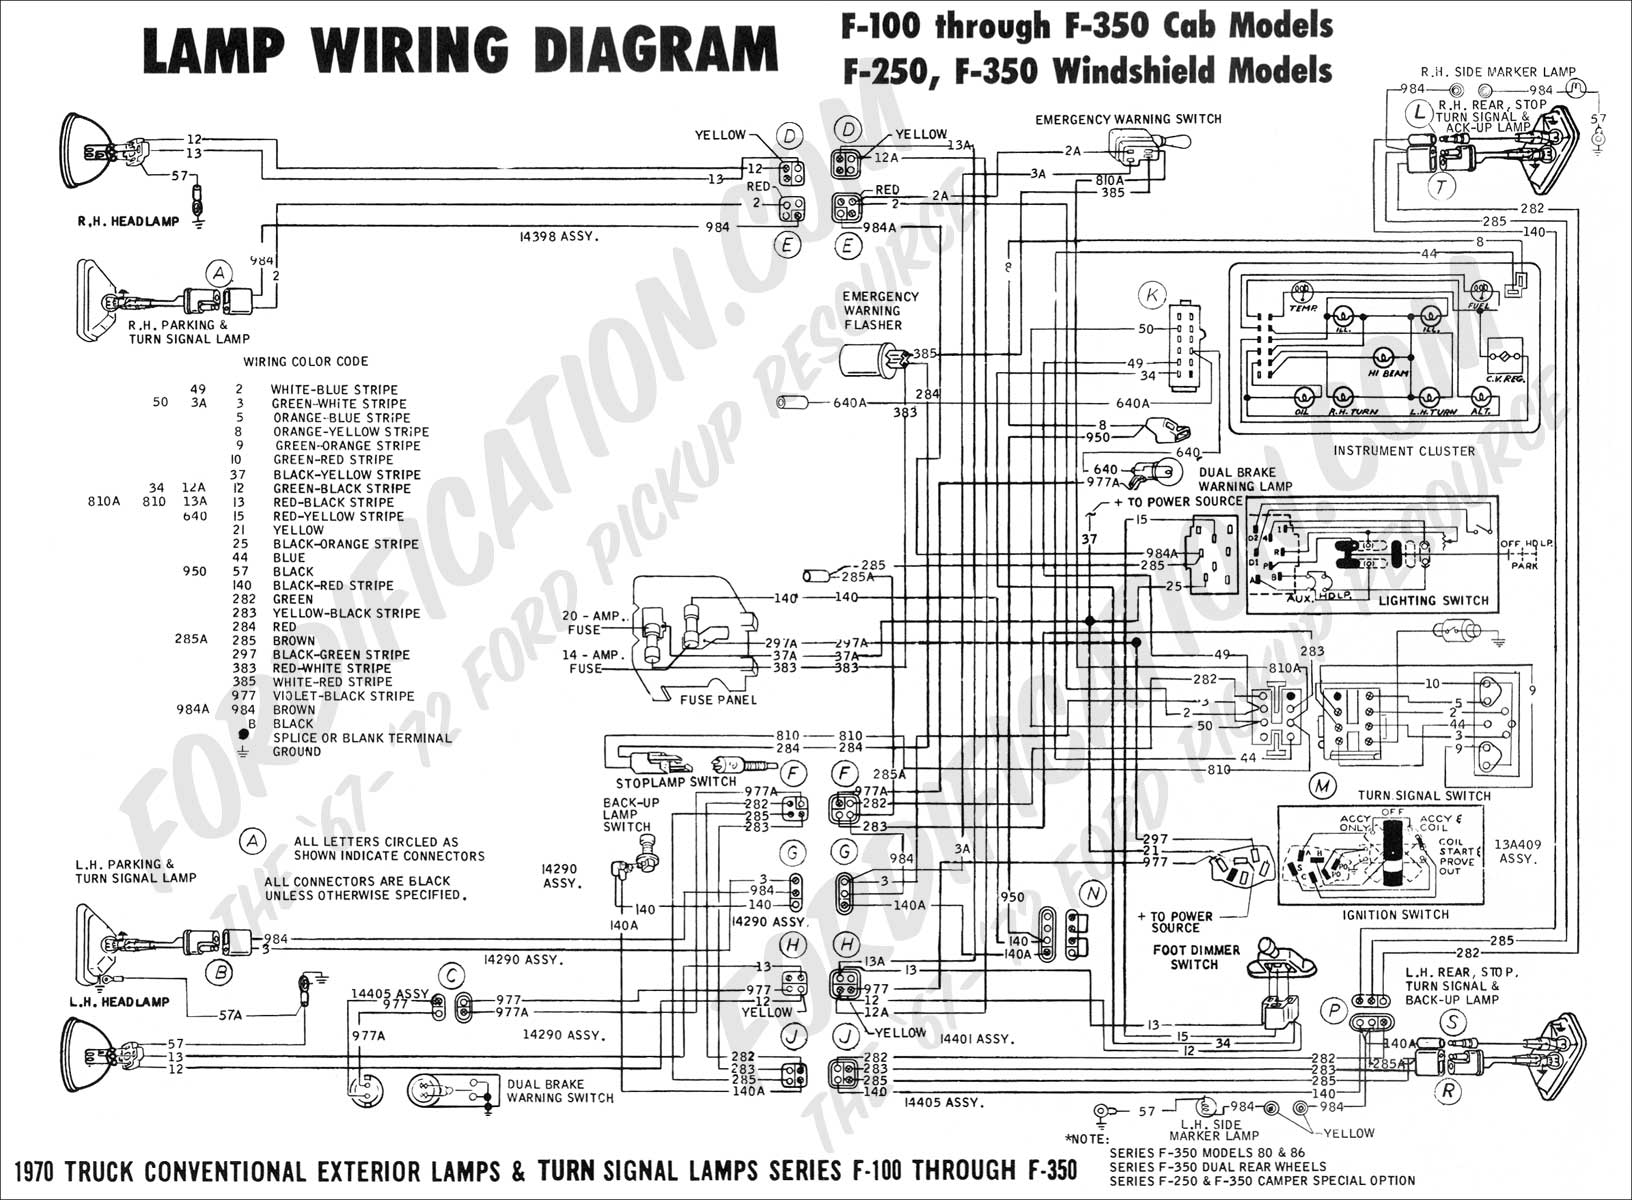 wiring diagram_70ext lights01 1986 ford f250 wiring diagram ford truck fuel system diagram 1992 ford f700 wiring diagram at bayanpartner.co